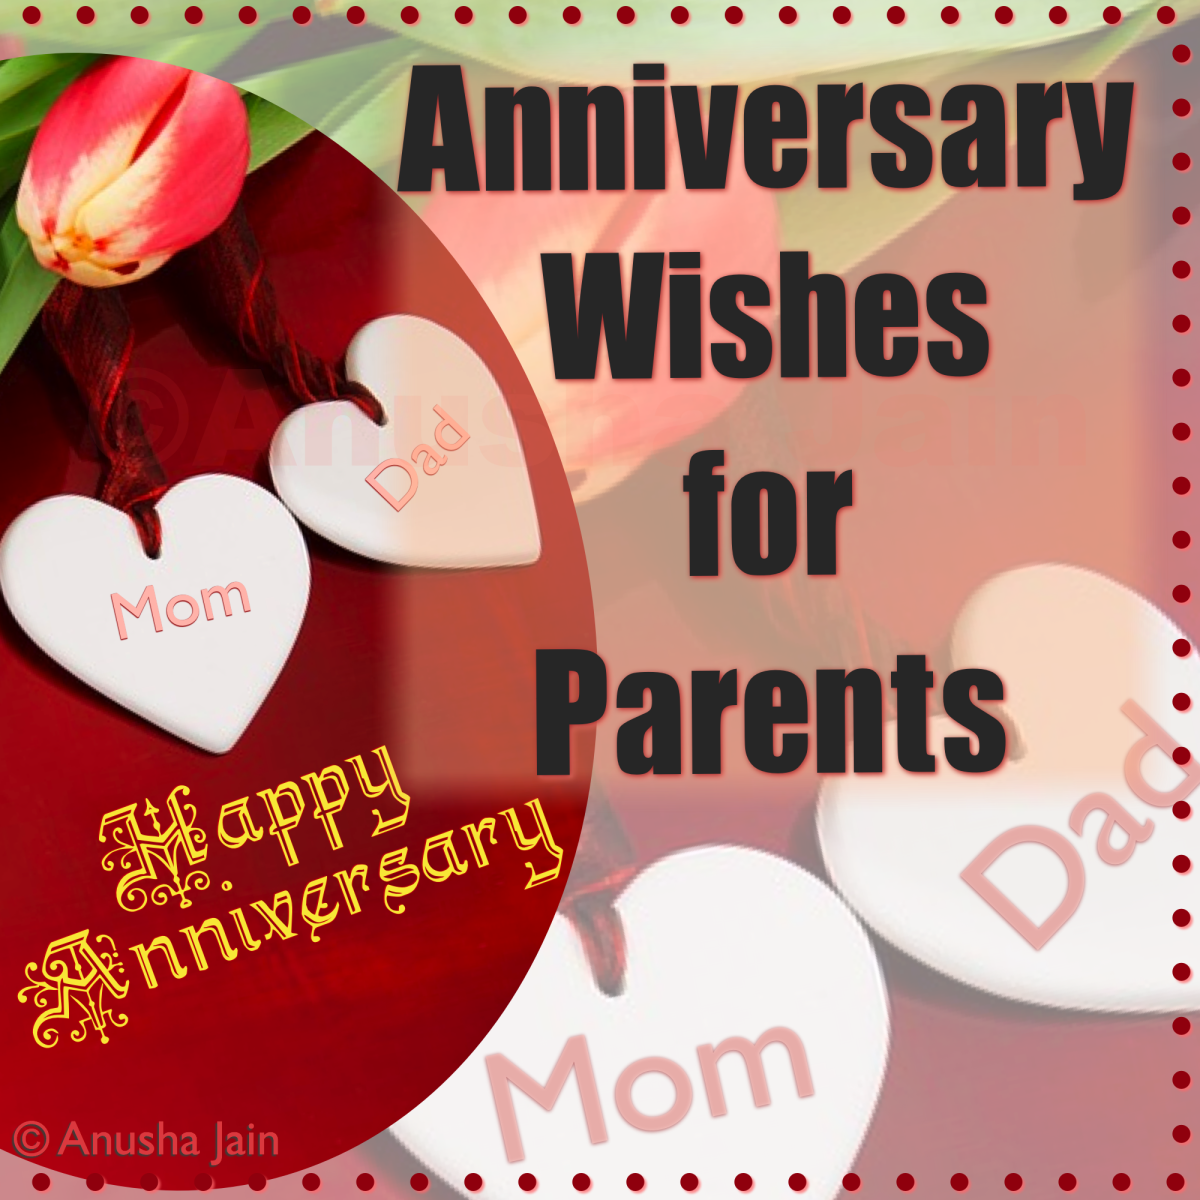 Parents Anniversary Poems From Daughter: Happy Anniversary Mom & Dad